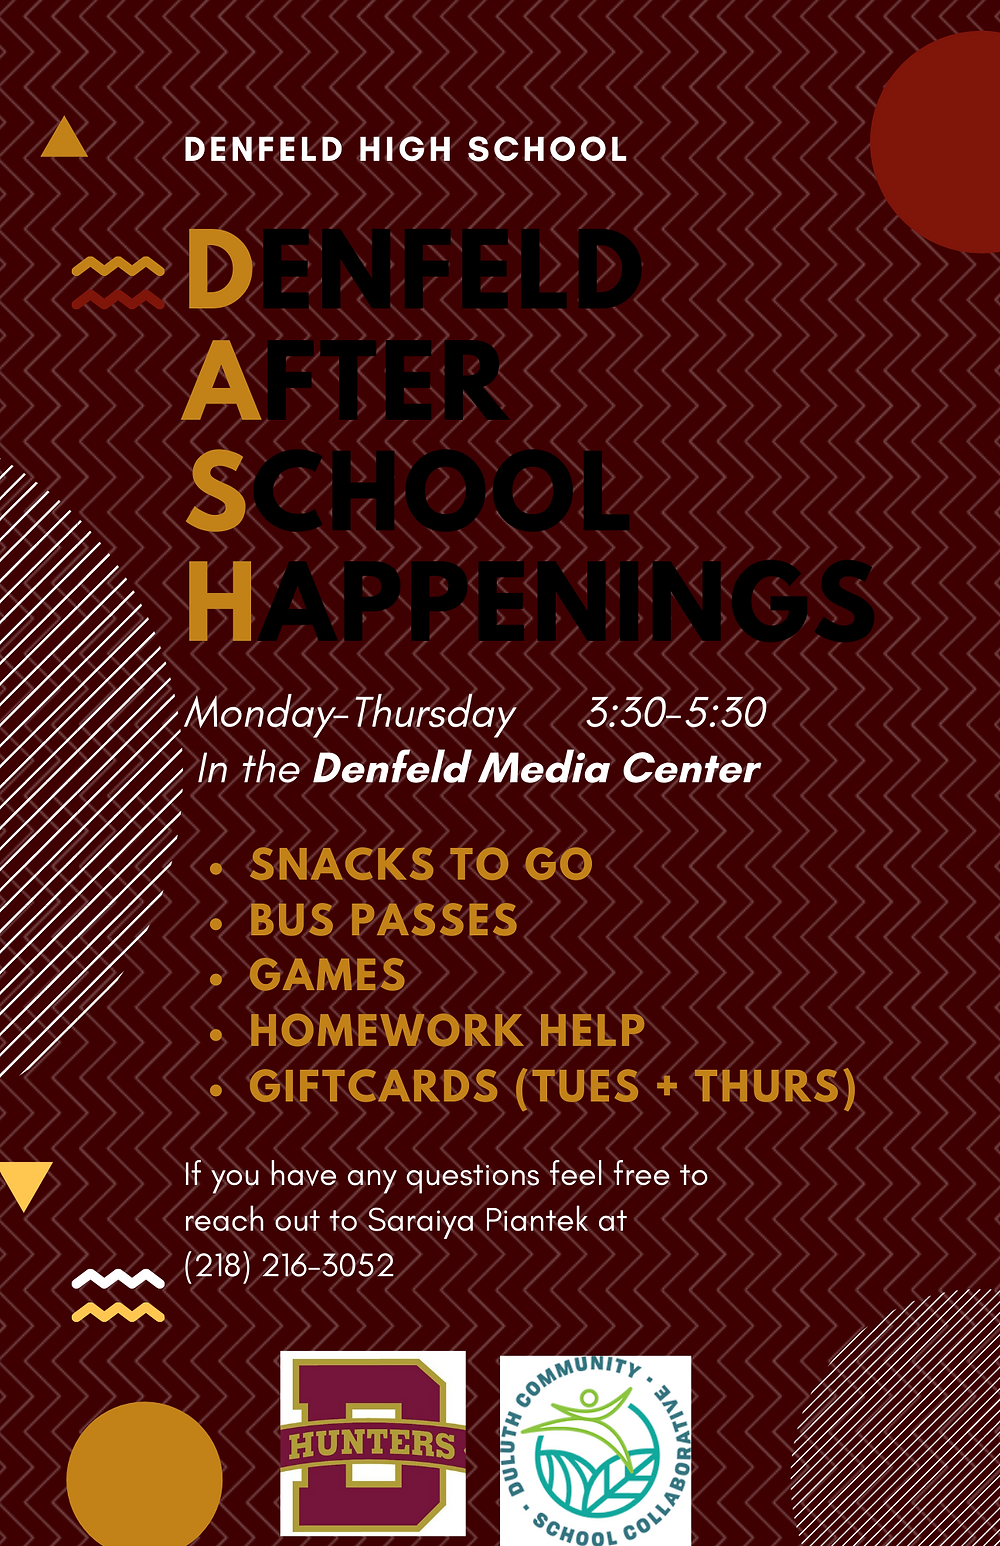 Text 'Denfeld High School. DASH: Denfeld After School Happenings. Monday-Thursday, 3:30-5:30 in the Denfeld Media Center. Snacks to go, bus passes, games, homework help, giftcards (tues+thurs). If you have any questions feel free to reach out to Saraiya Piantek at (218) 216-3052.' above the denfeld Hunters logo and the Duluth community school collaborative logo.